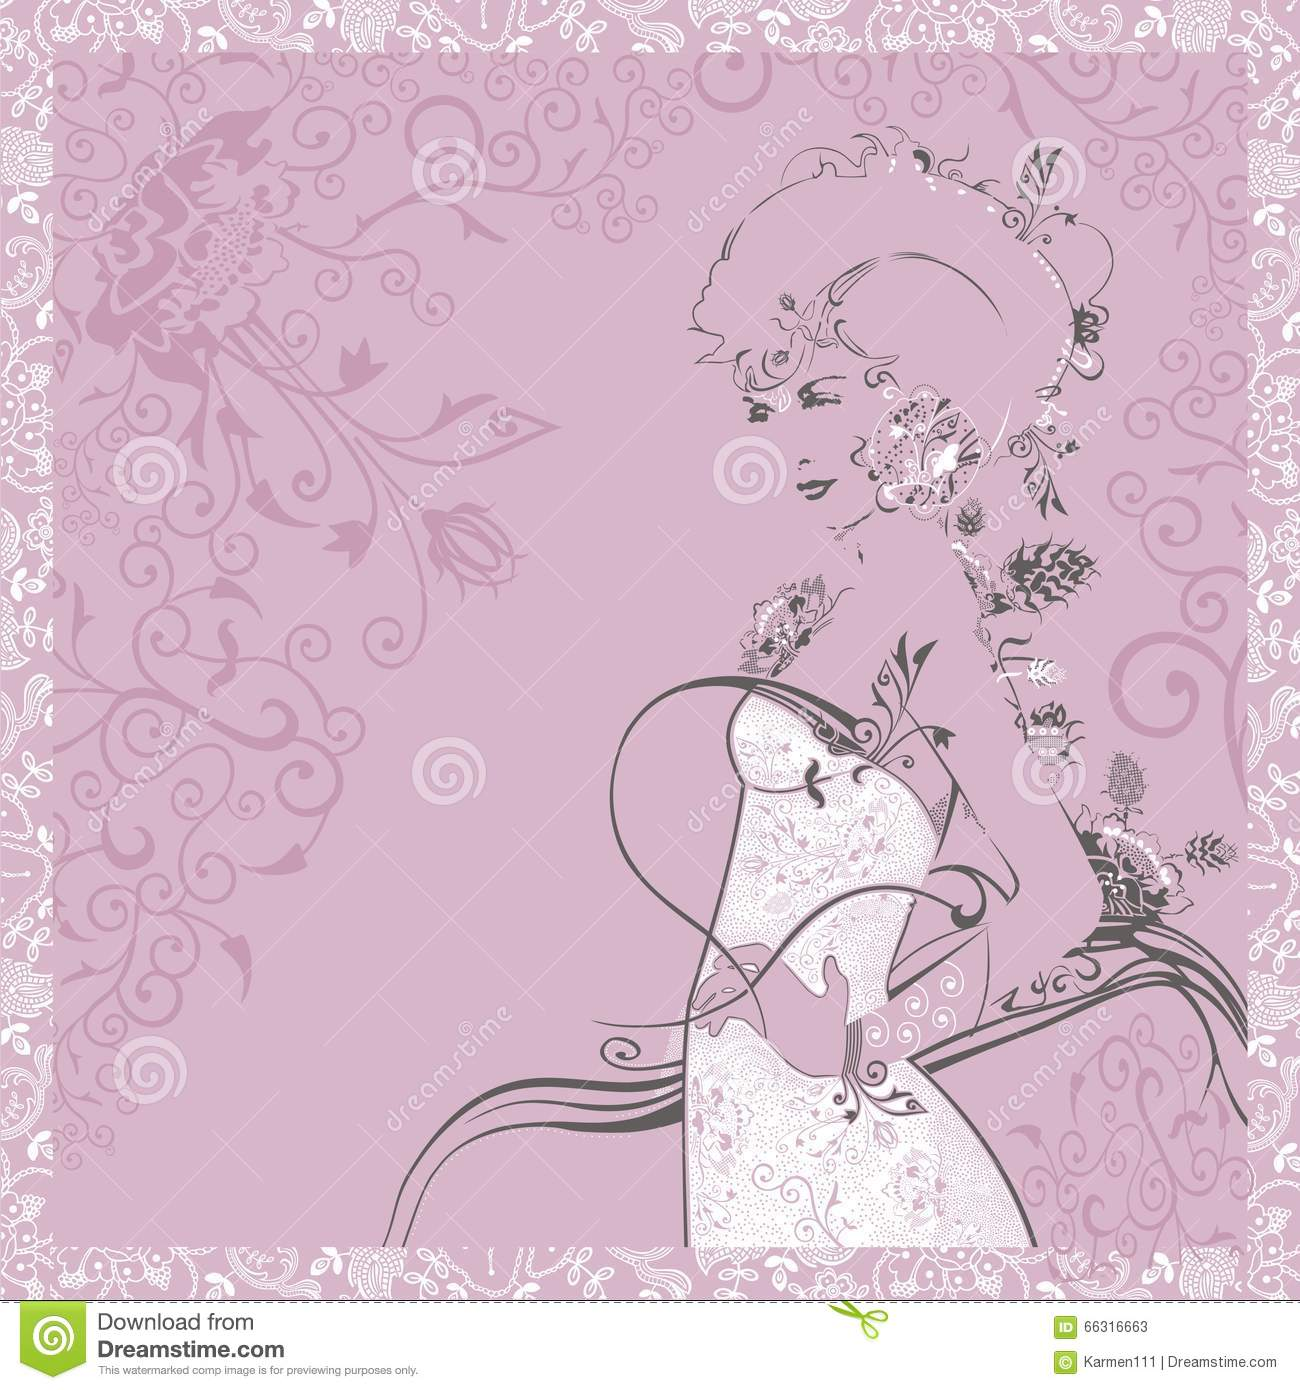 Silhouette of a beautiful and elegant woman in white dress greeting silhouette of a beautiful and elegant woman in white dress greeting card on march 8 m4hsunfo